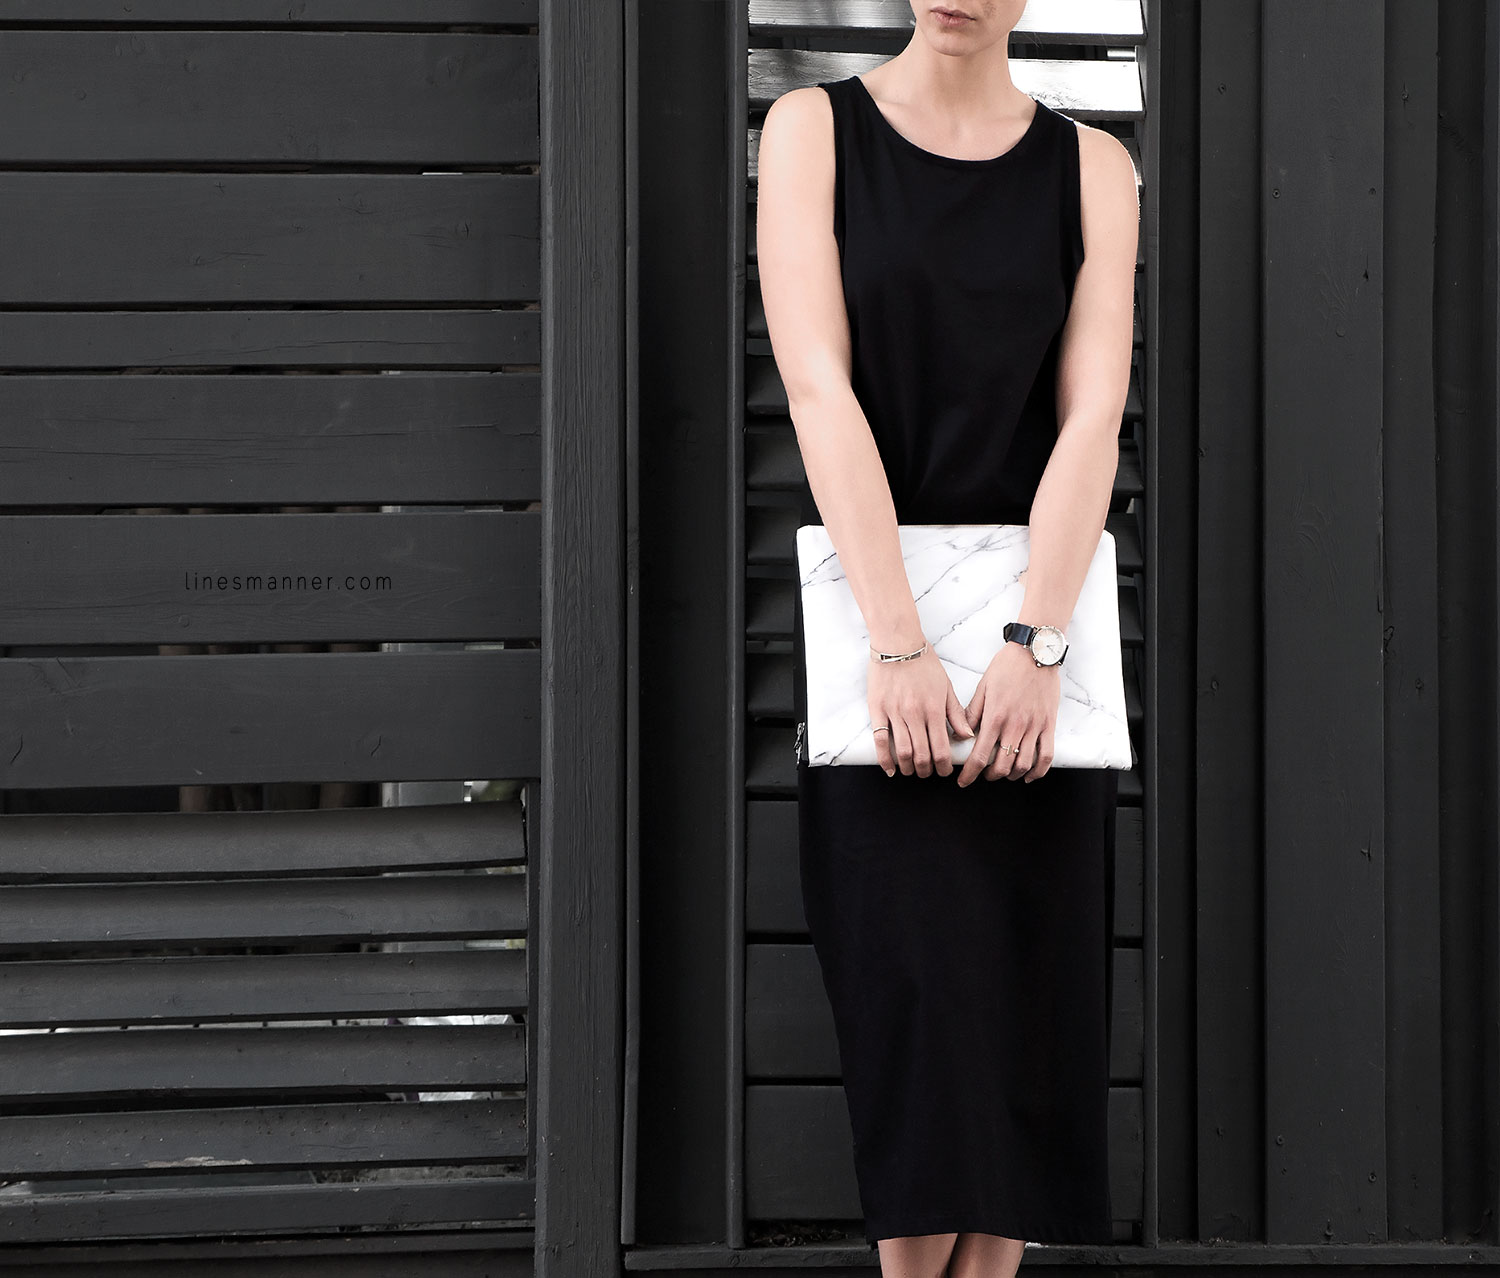 Lines-Manner-Minimal-Clean-Simplicity-Slide_Slit_Dress-Organic_Cotton-Rada_Studio_Essentials-Marble-Details-Outfit-Fashion-Monochrome-Timeless-Modern-Handmade-3